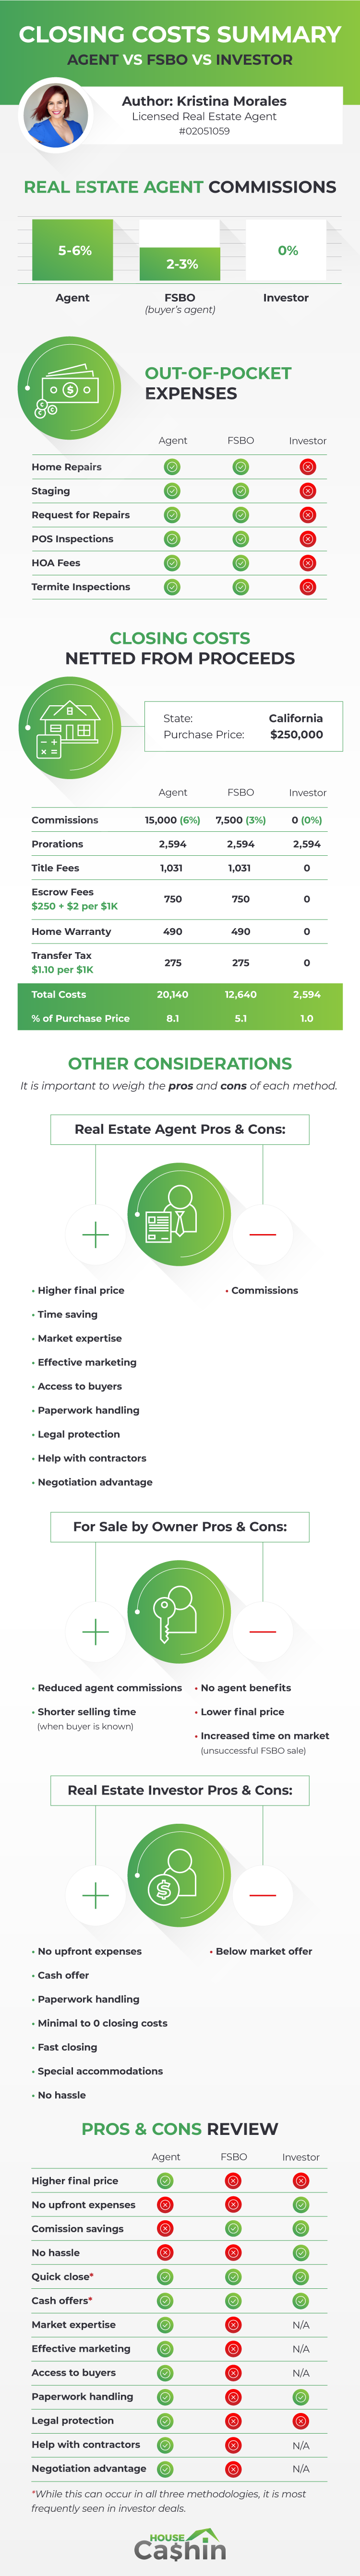 Infographic: Realtor vs FSBO vs Investor: Closing Costs Comparison